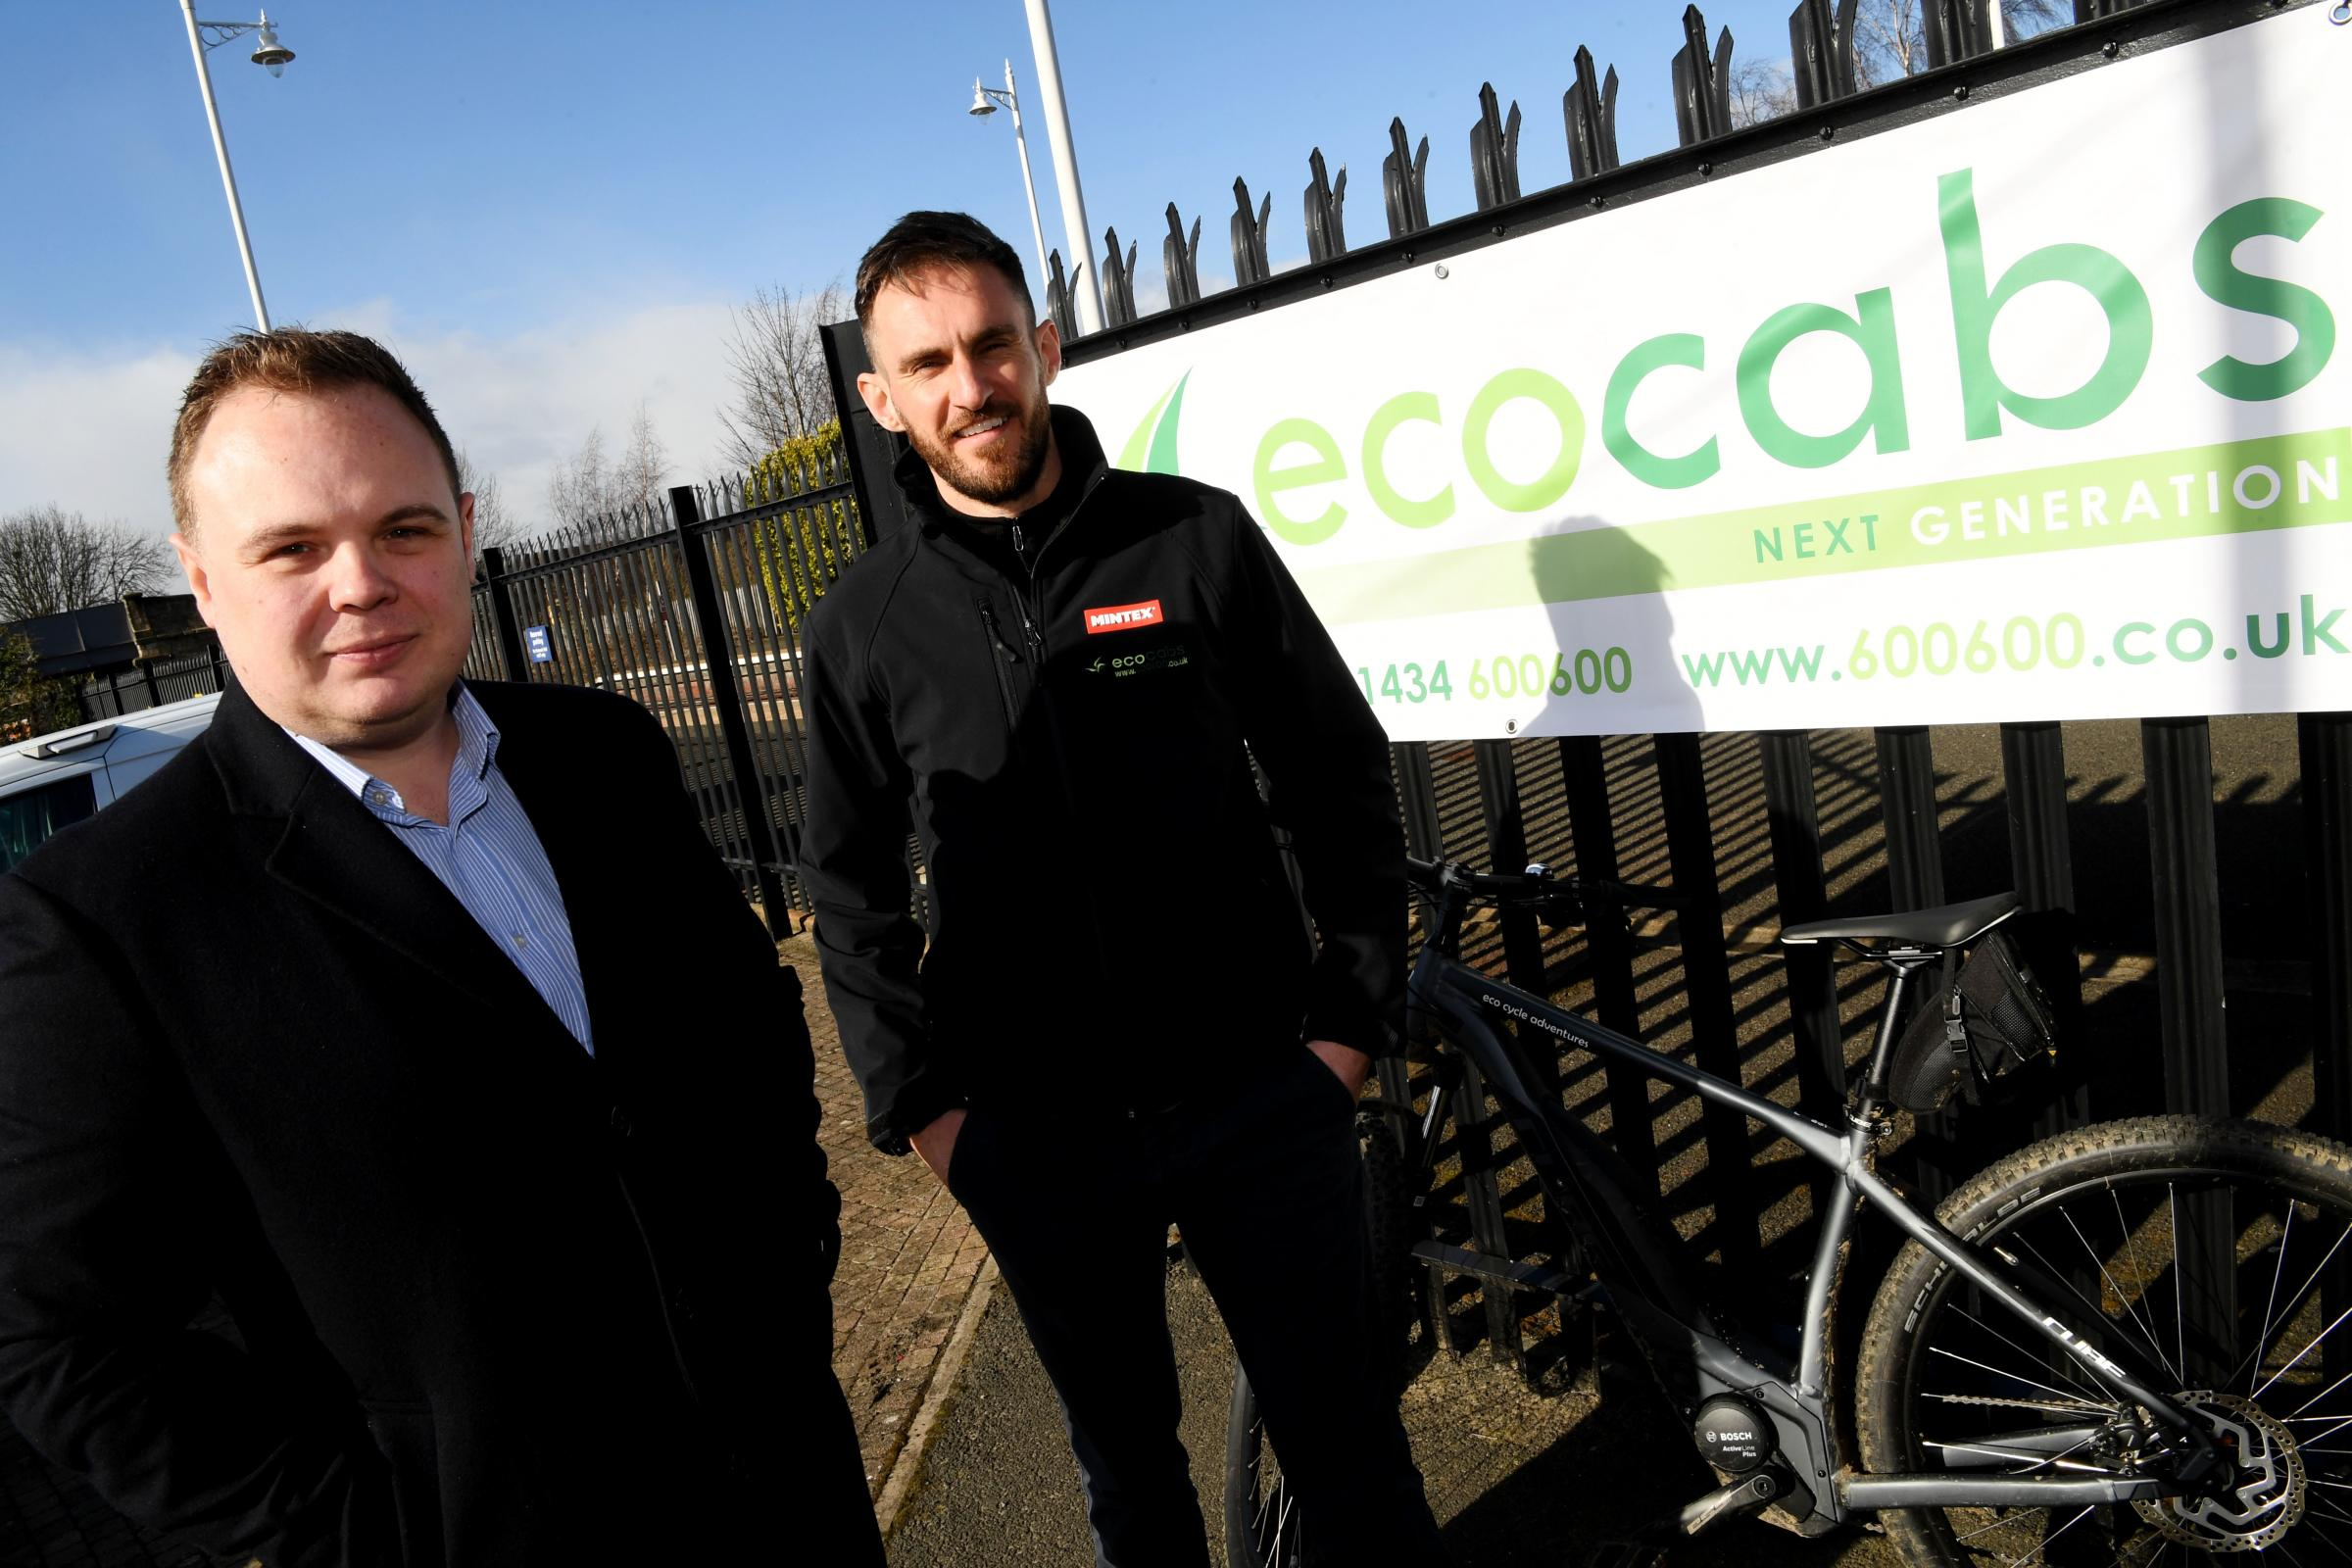 Dean Whitlie from Lloyds Bank and Matthew Kirkby from Ecocycle Adventures. 					            Photo: HX121945